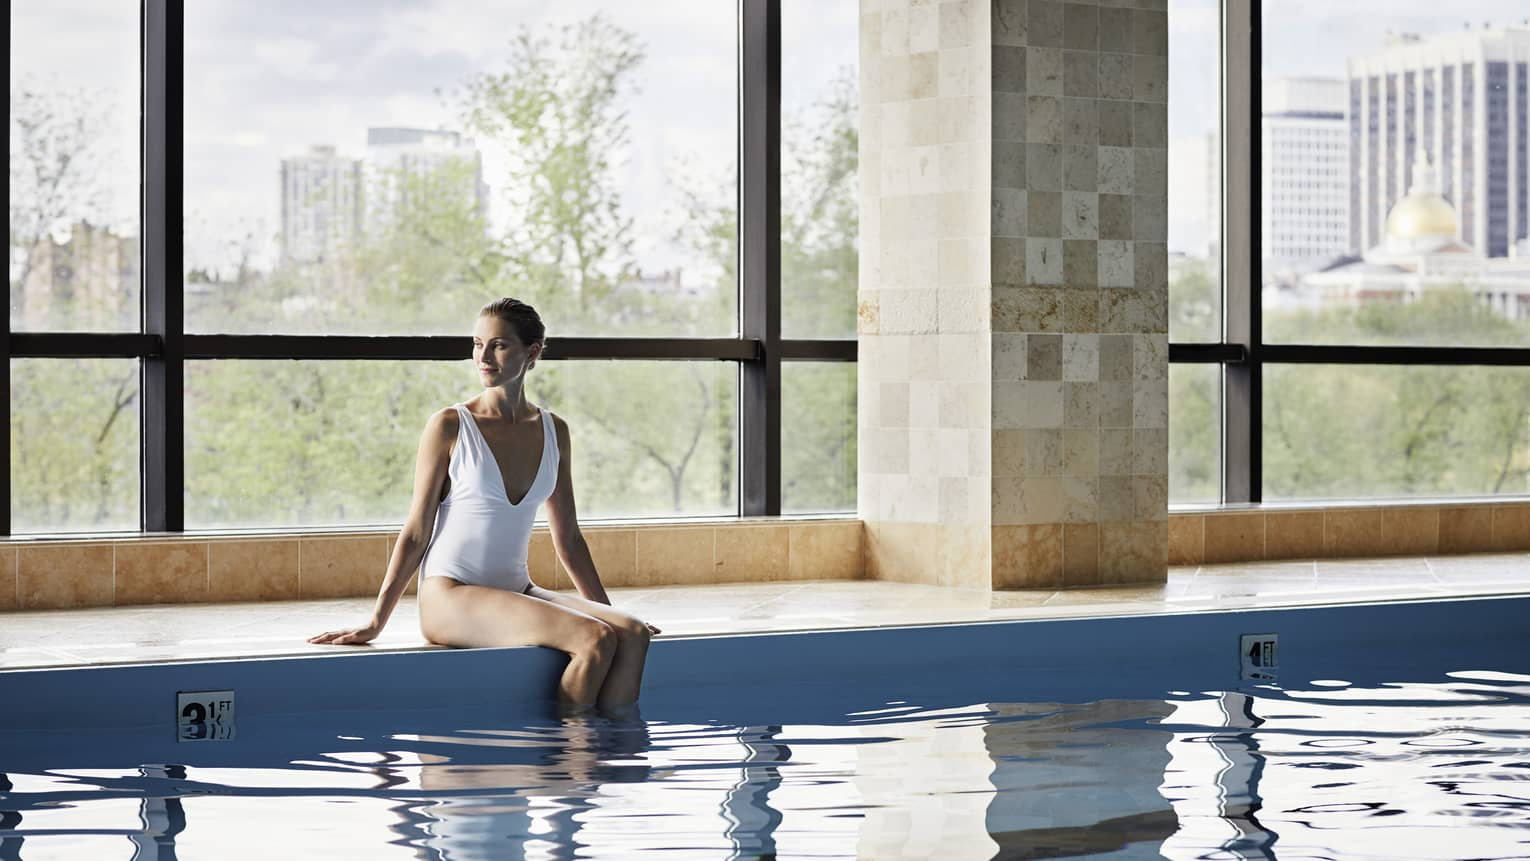 Woman in white swimsuit sits on edge of indoor swimming pool with legs in water